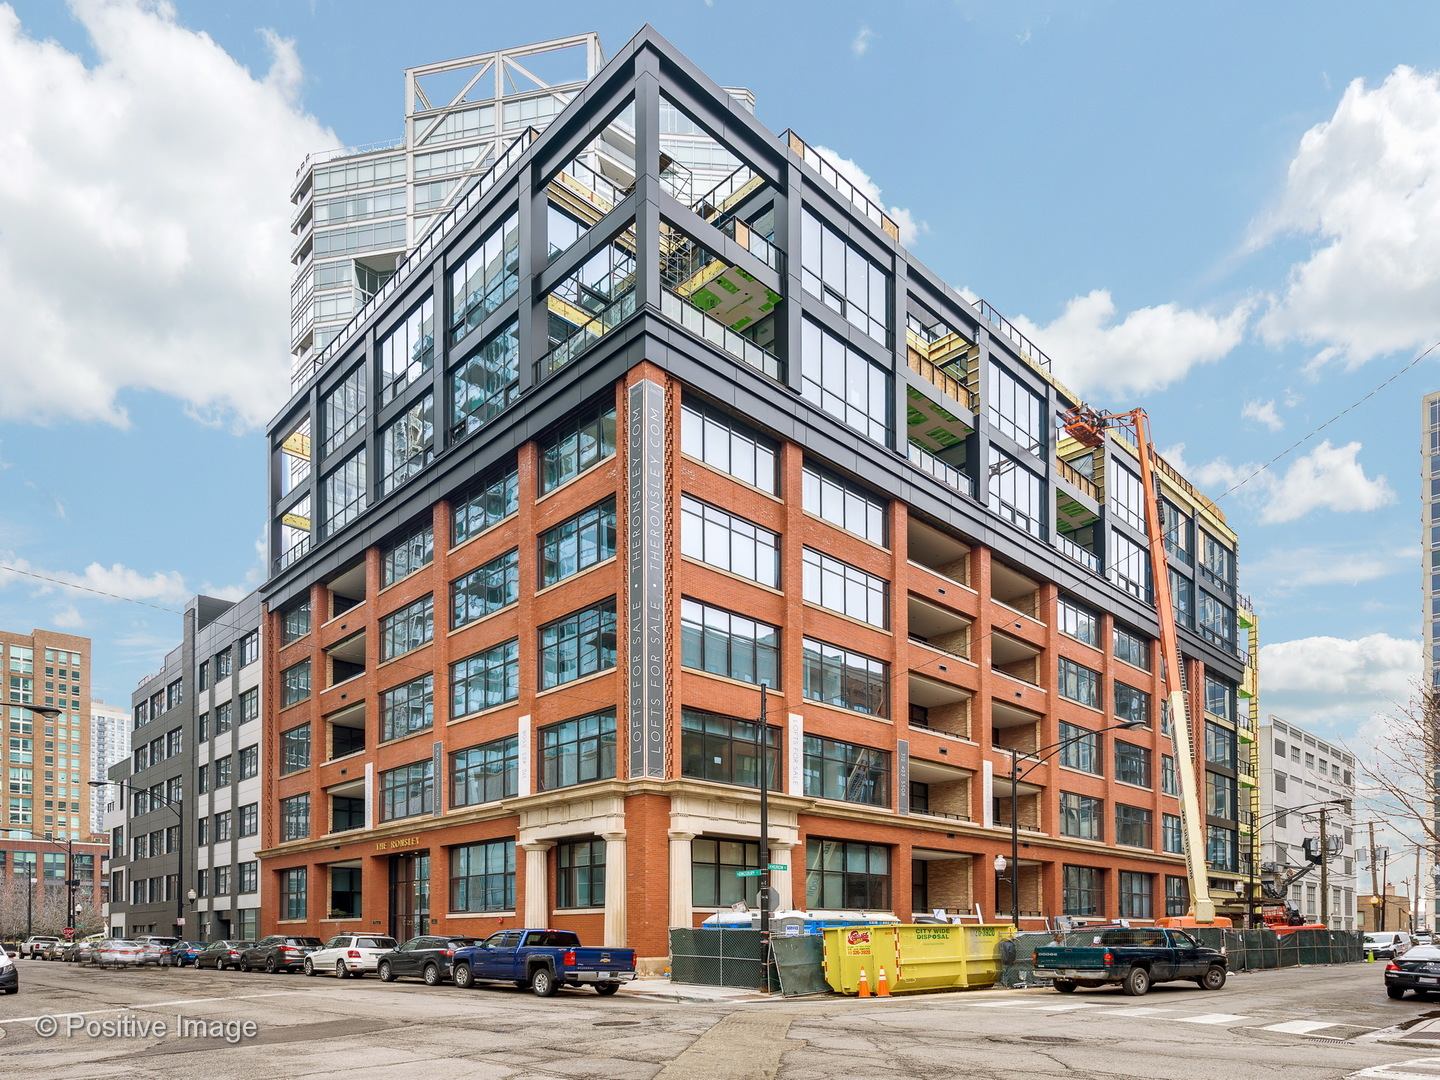 676 N KINGSBURY ST Unit #606, Chicago, IL, 60654, condos and townhomes for sale